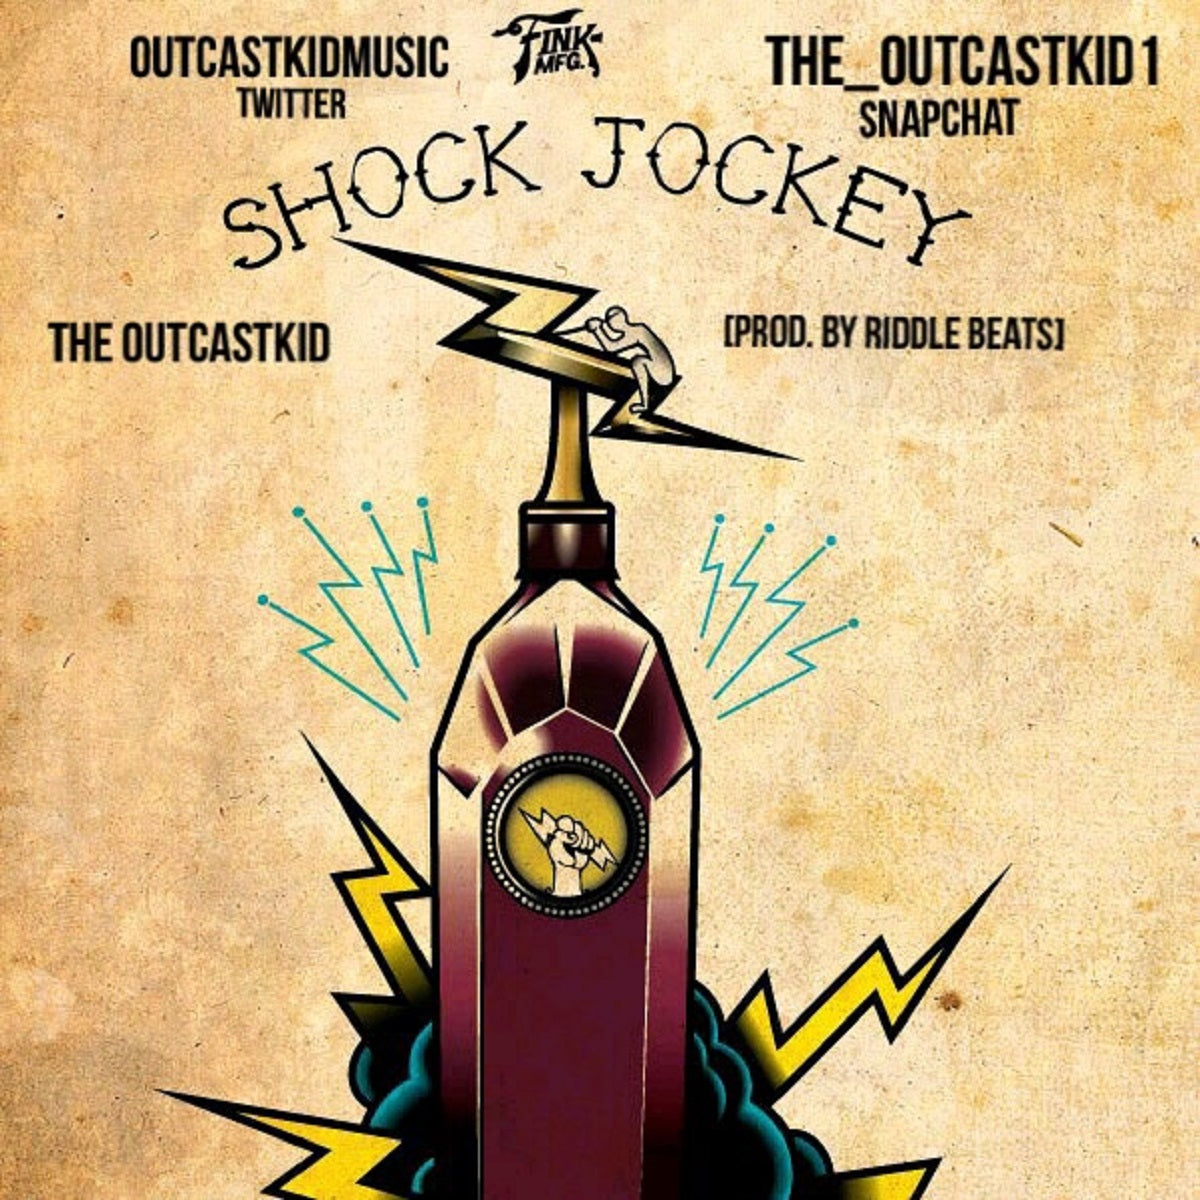 The Outcastkid - 'Shock Jockey'